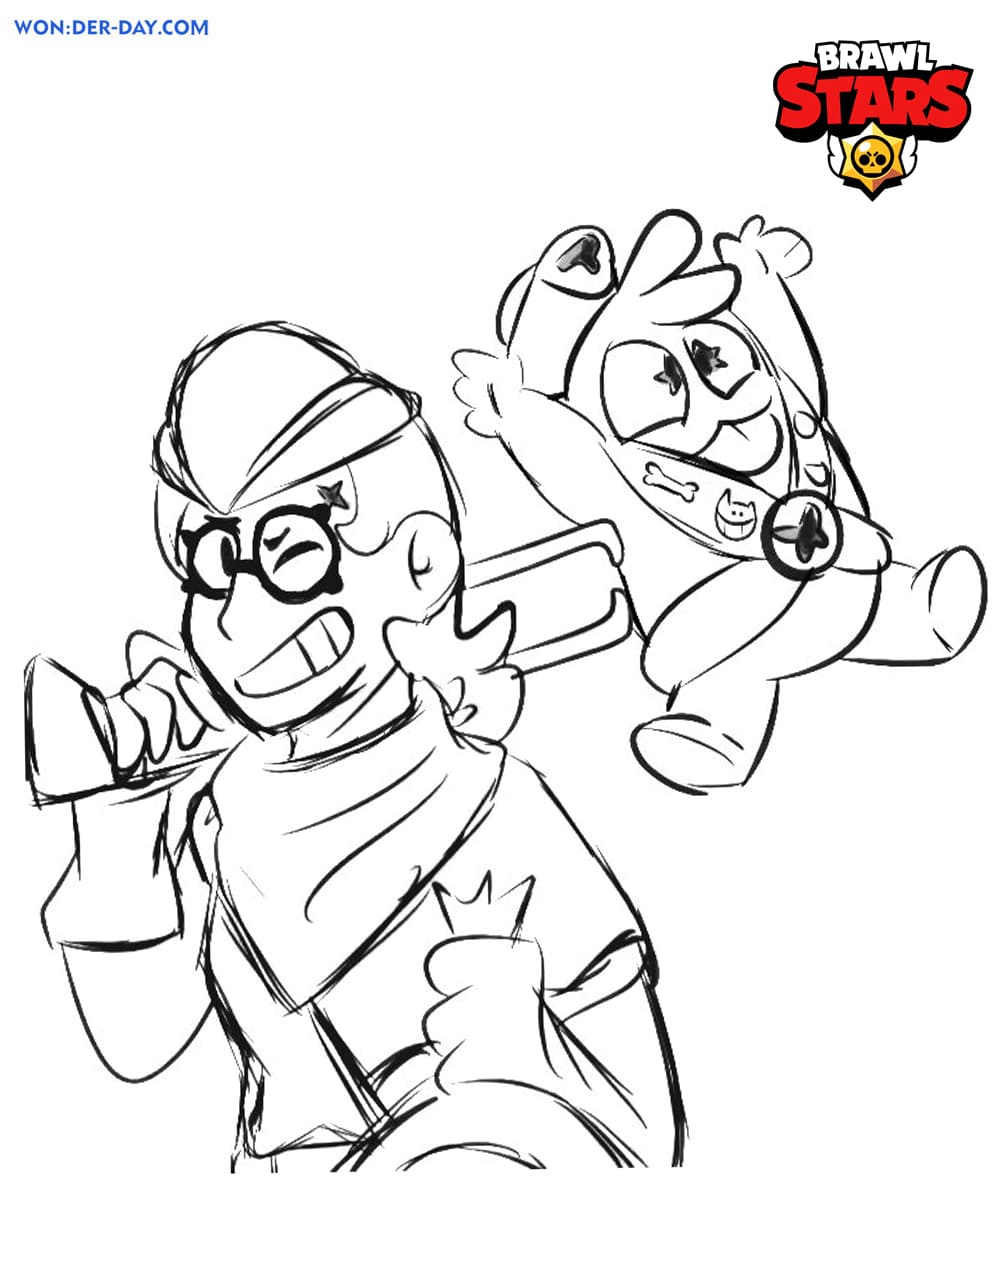 belle brawl stars coloring pages  wonder day